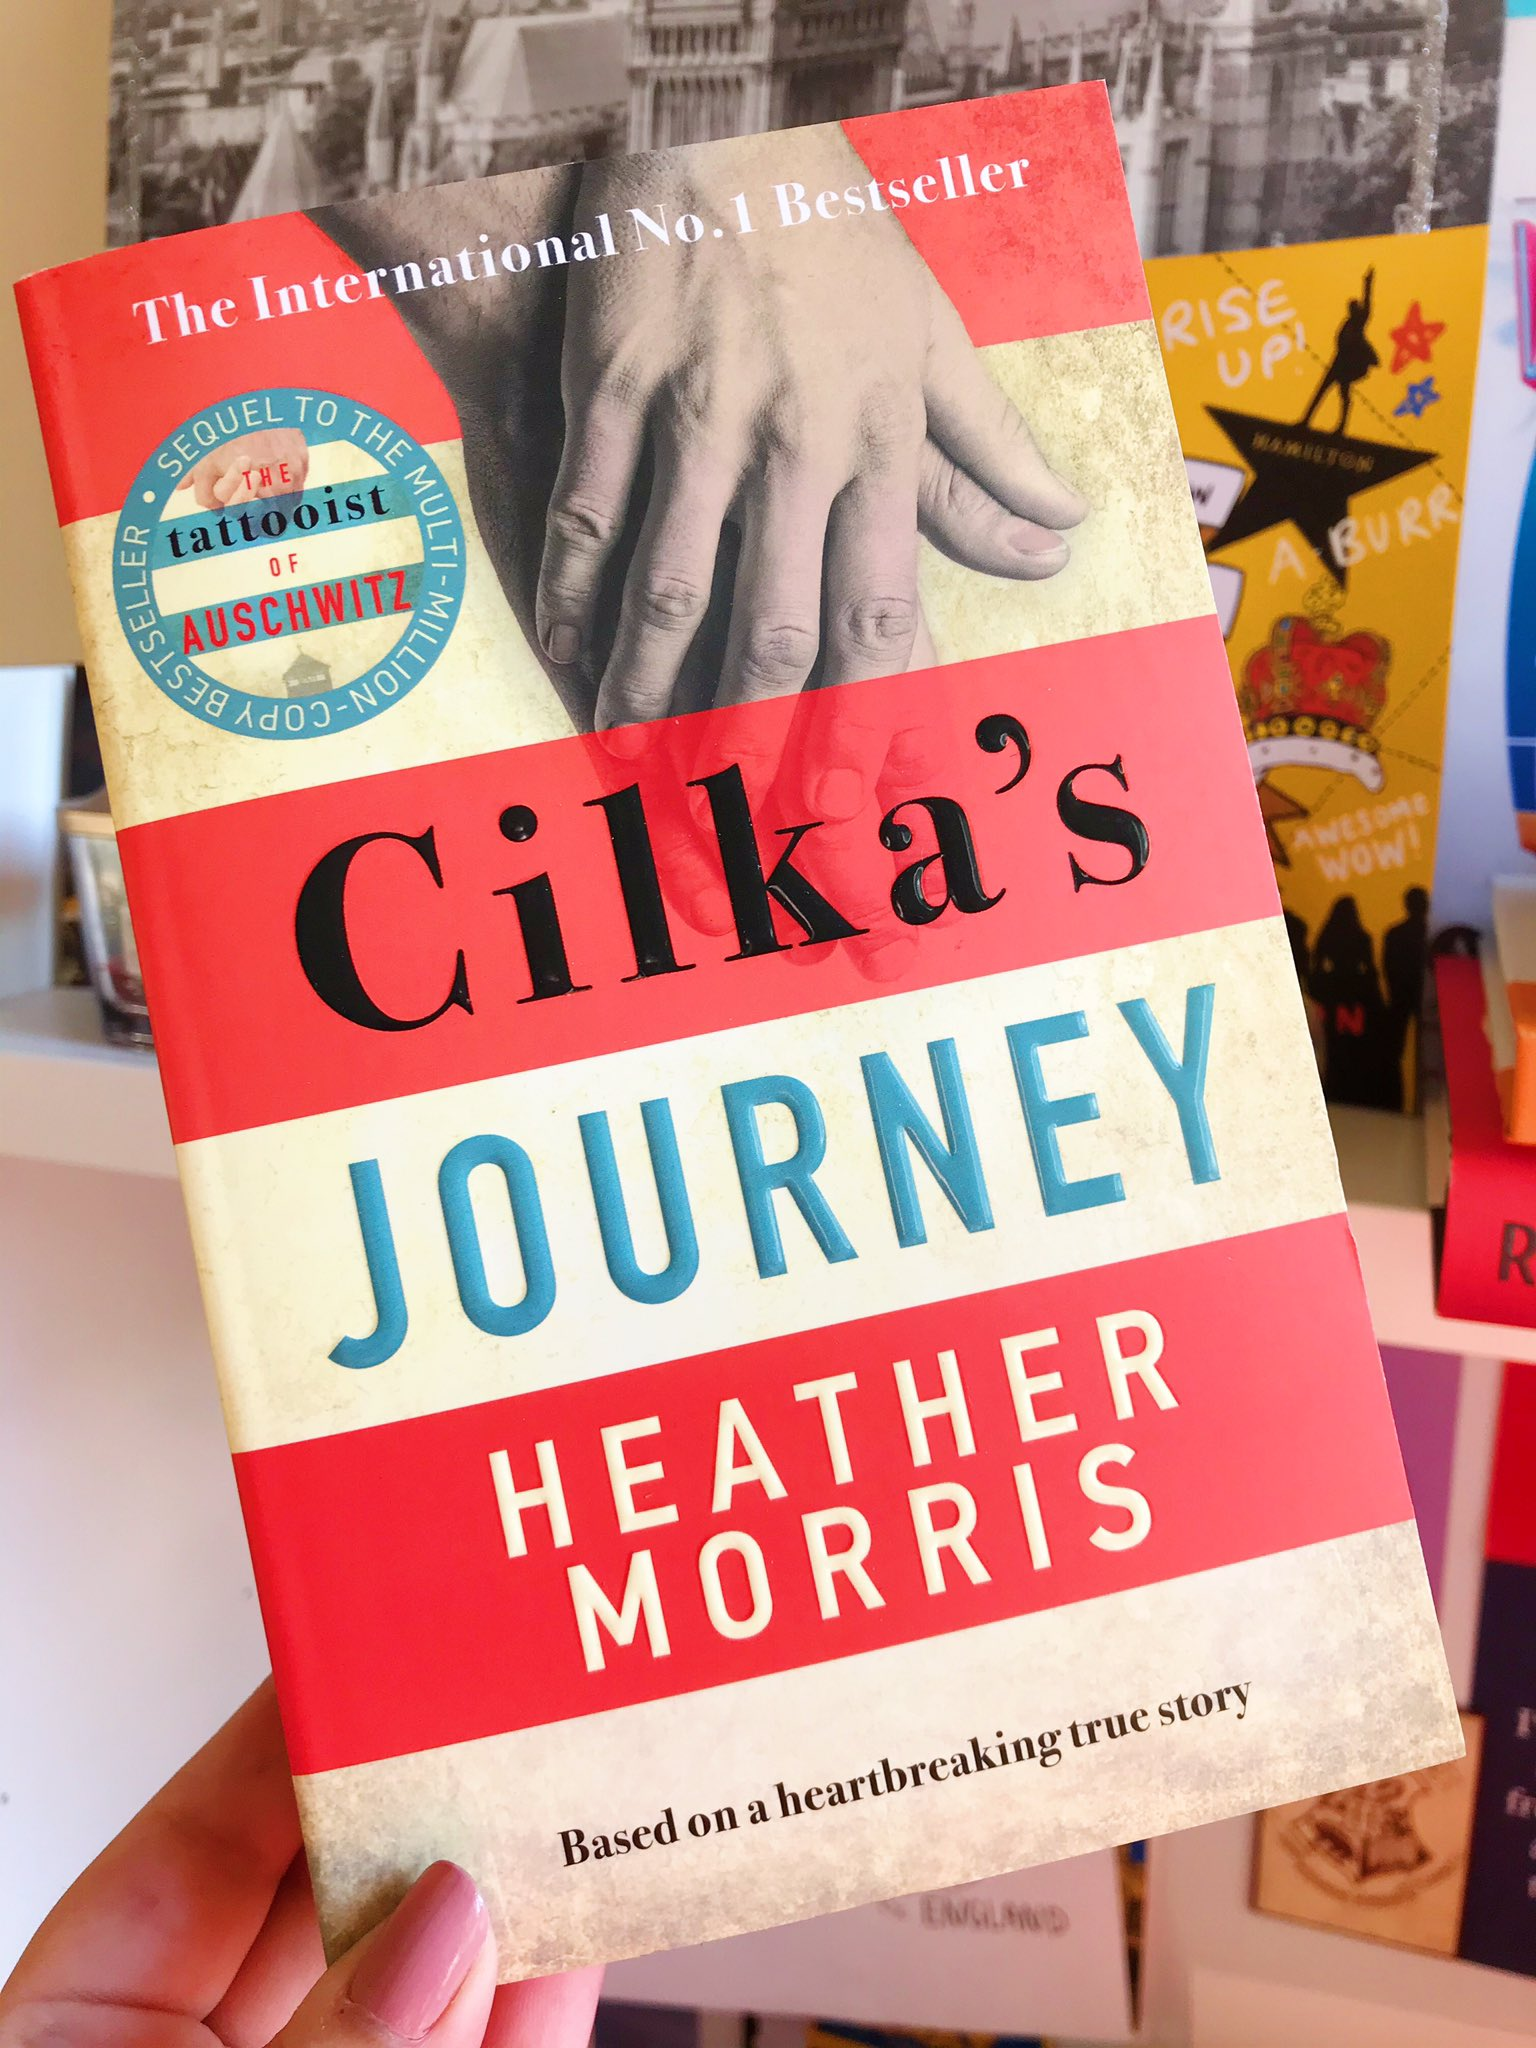 Cilka's Journey by Heather Morris held up in front of desk